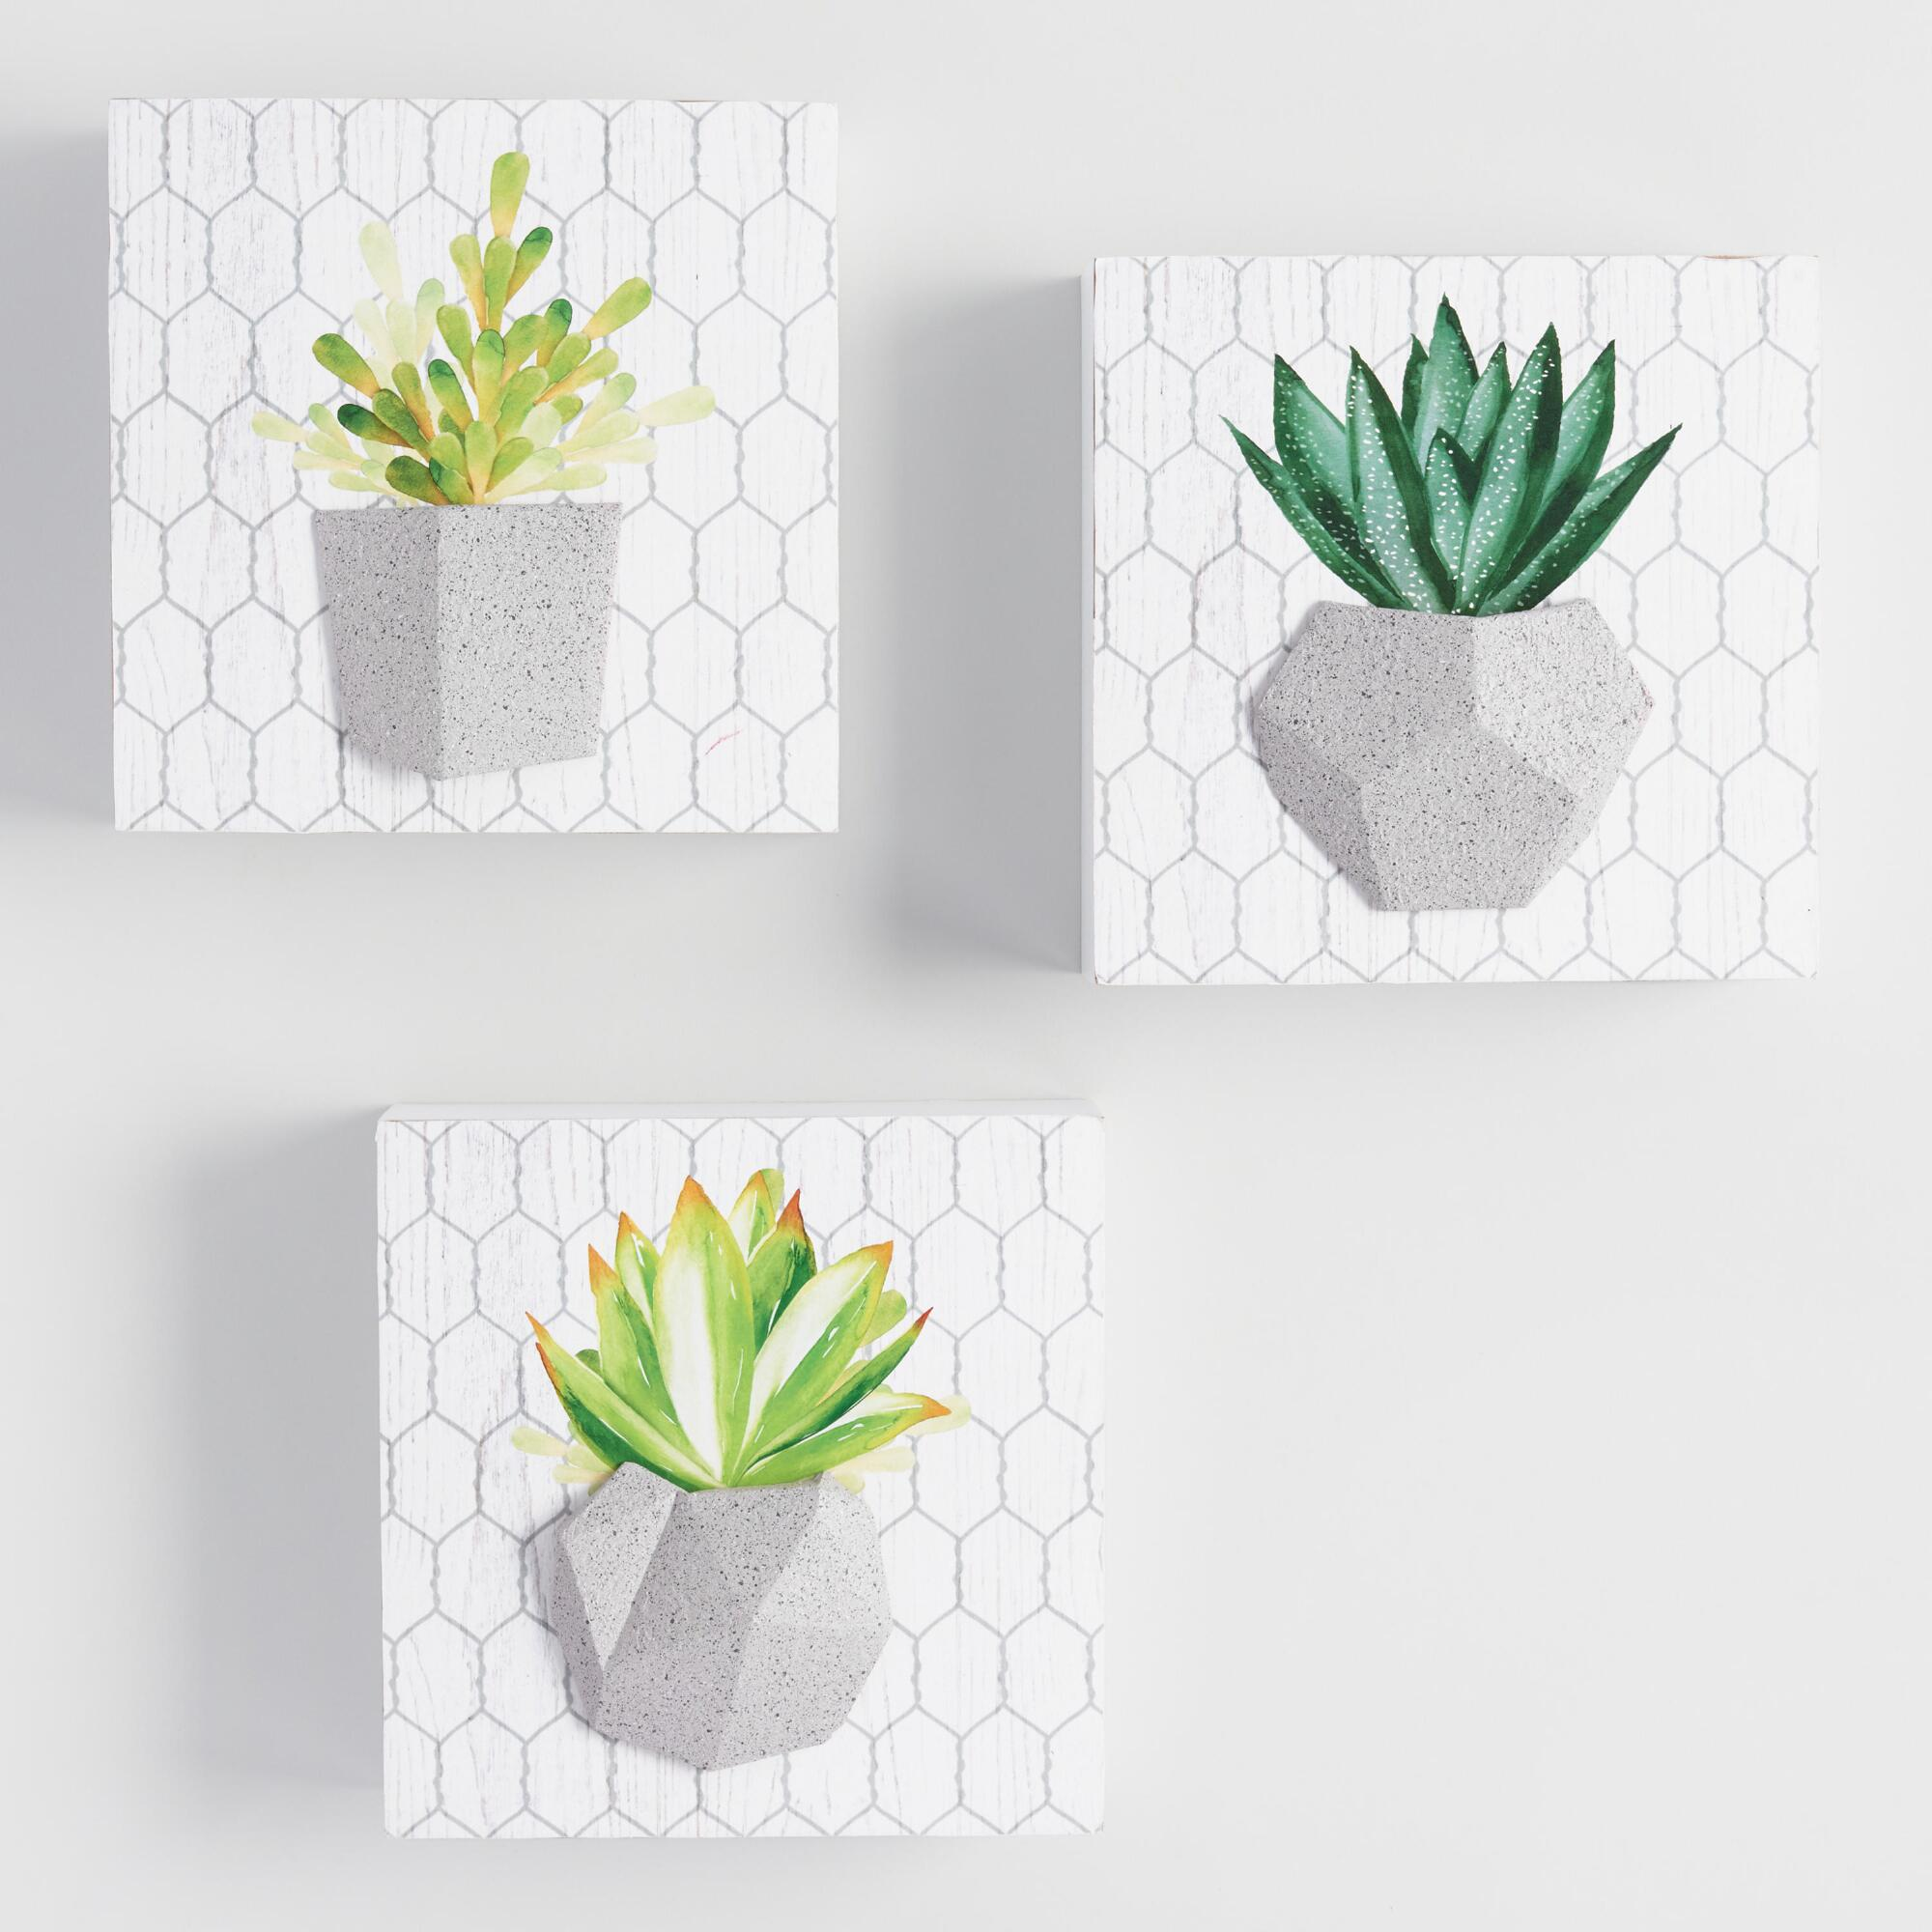 Potted Cactus Wall Art Set of 3 by World Market